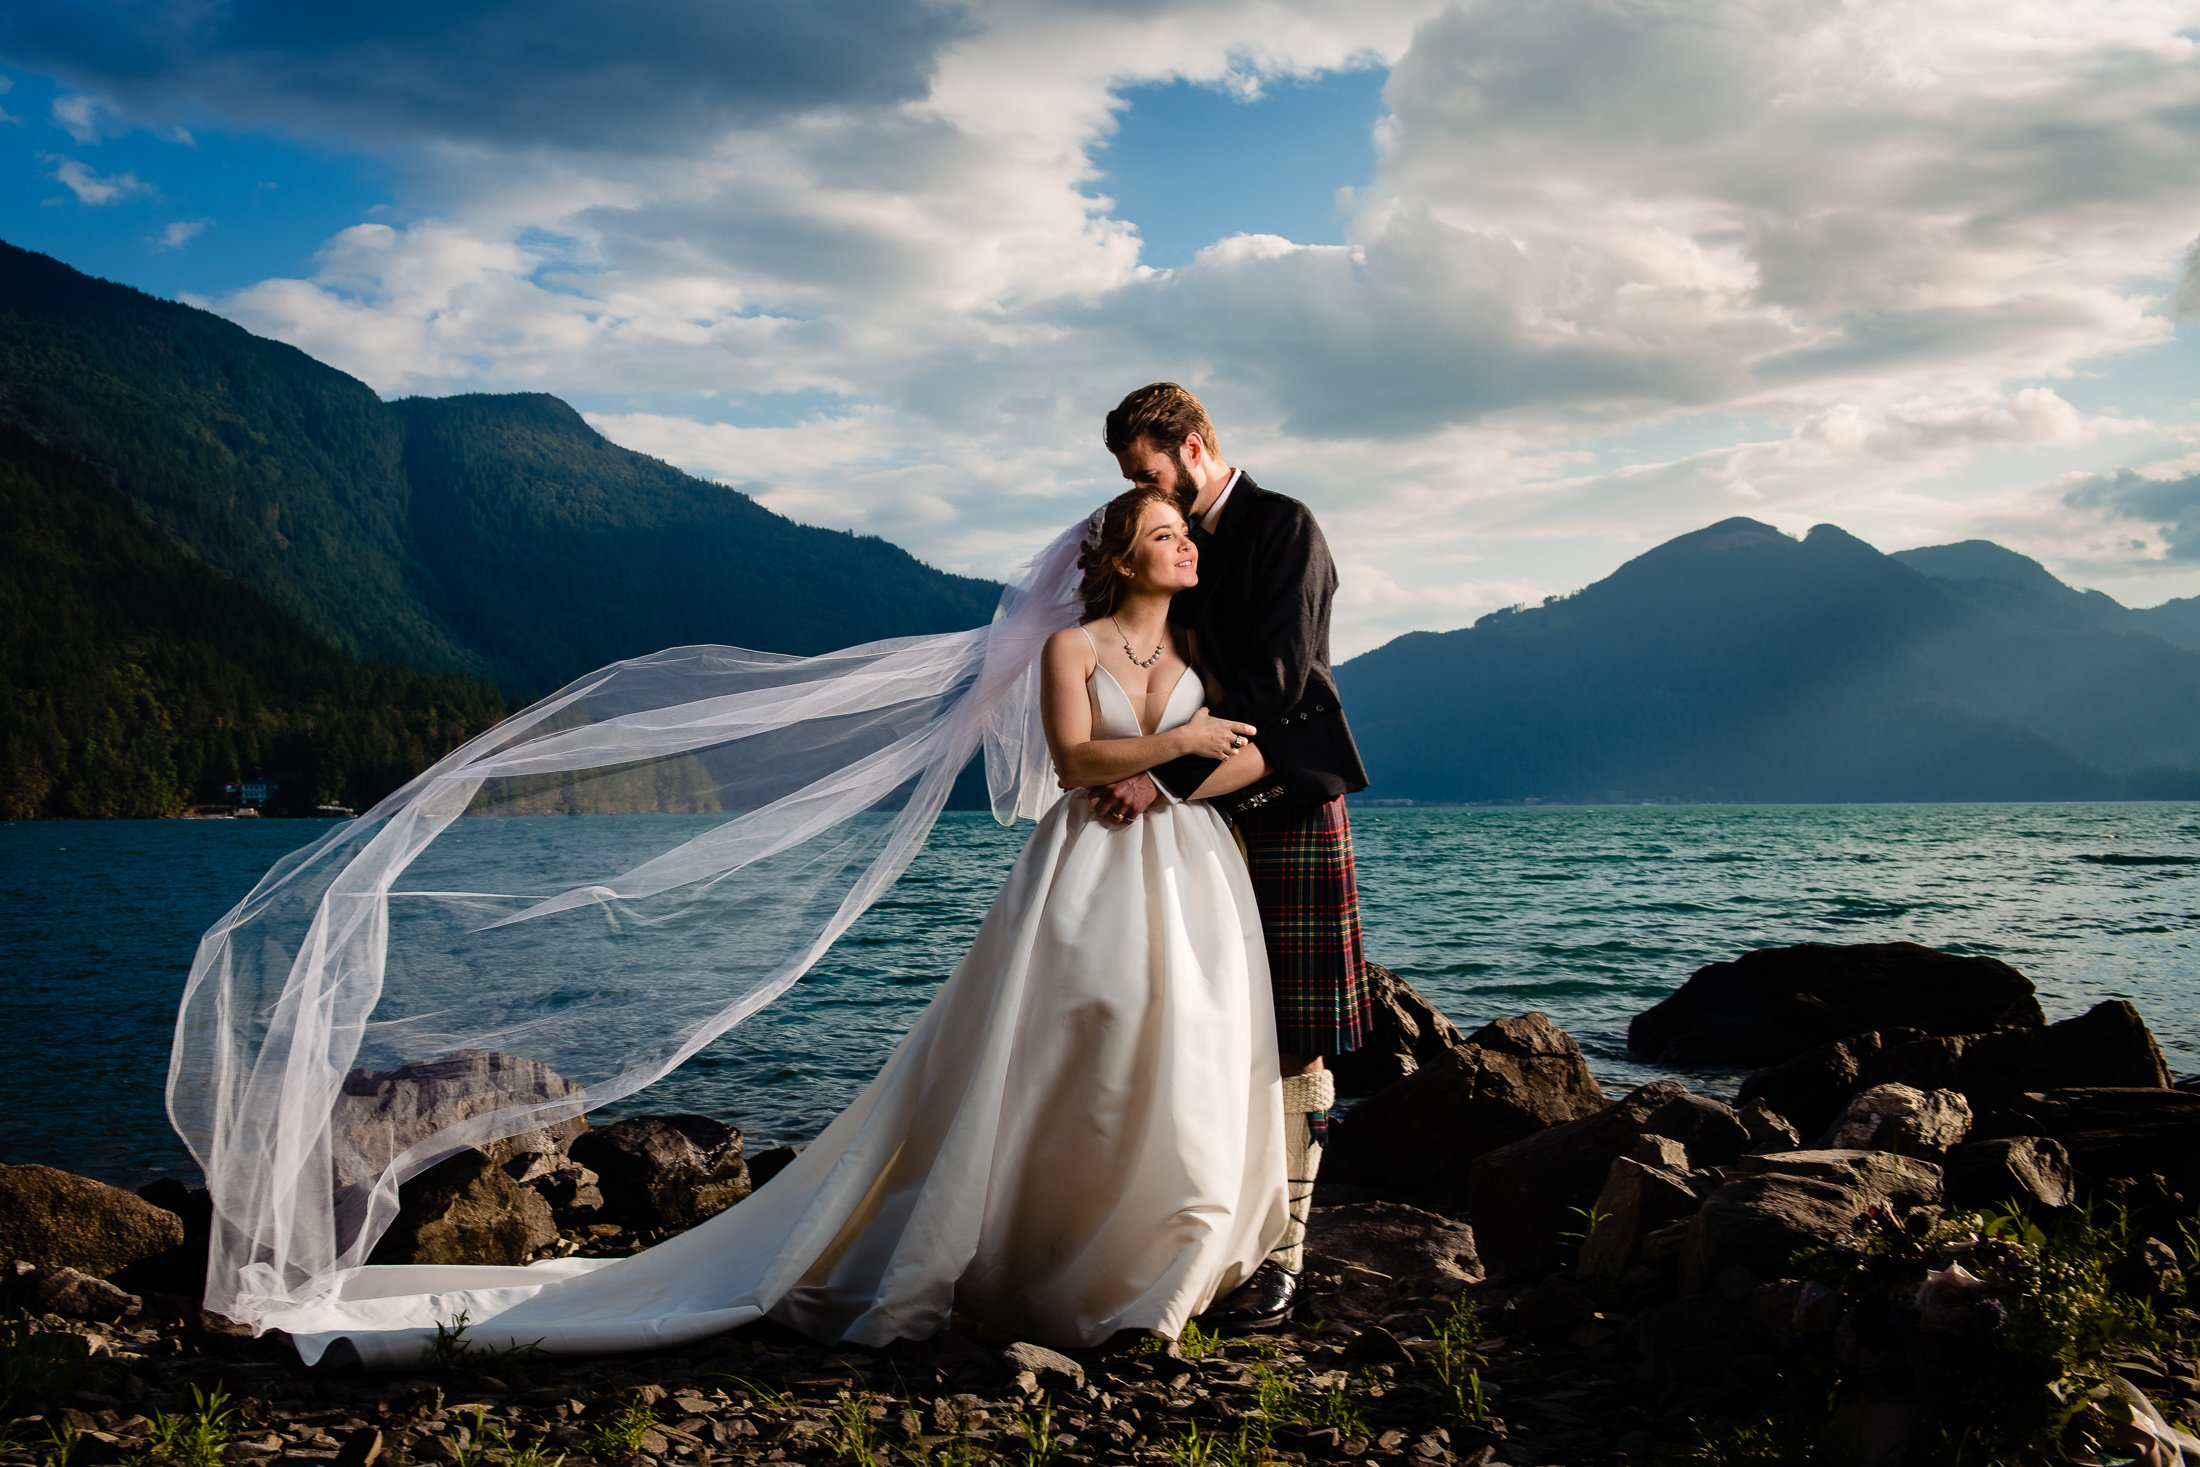 024 - fraser valley wedding photographer